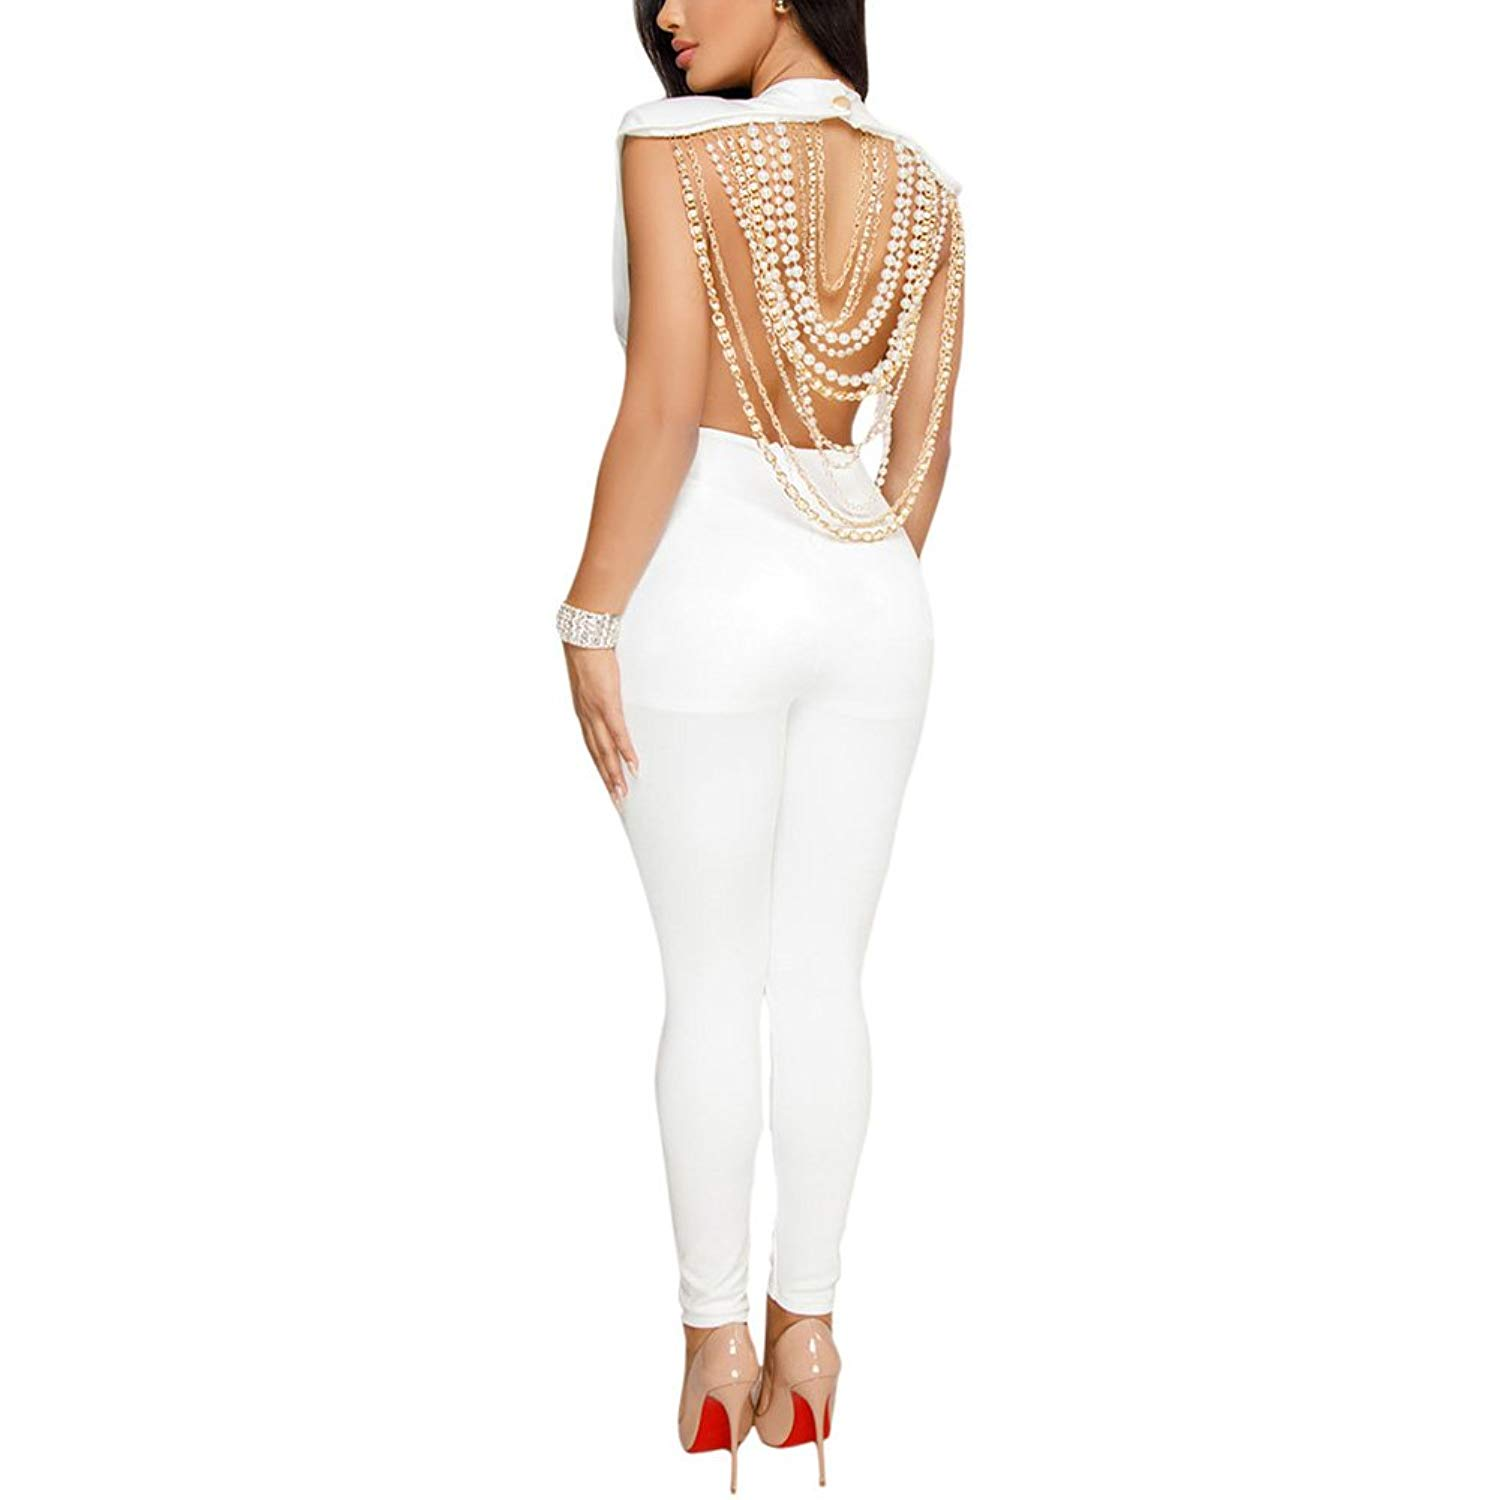 76a4a96f3973 Get Quotations · Kafiloe Womens Backless Sleeveless Party Club Cocktail One  Piece Bodycon Jumpsuit Outfit Romper White M